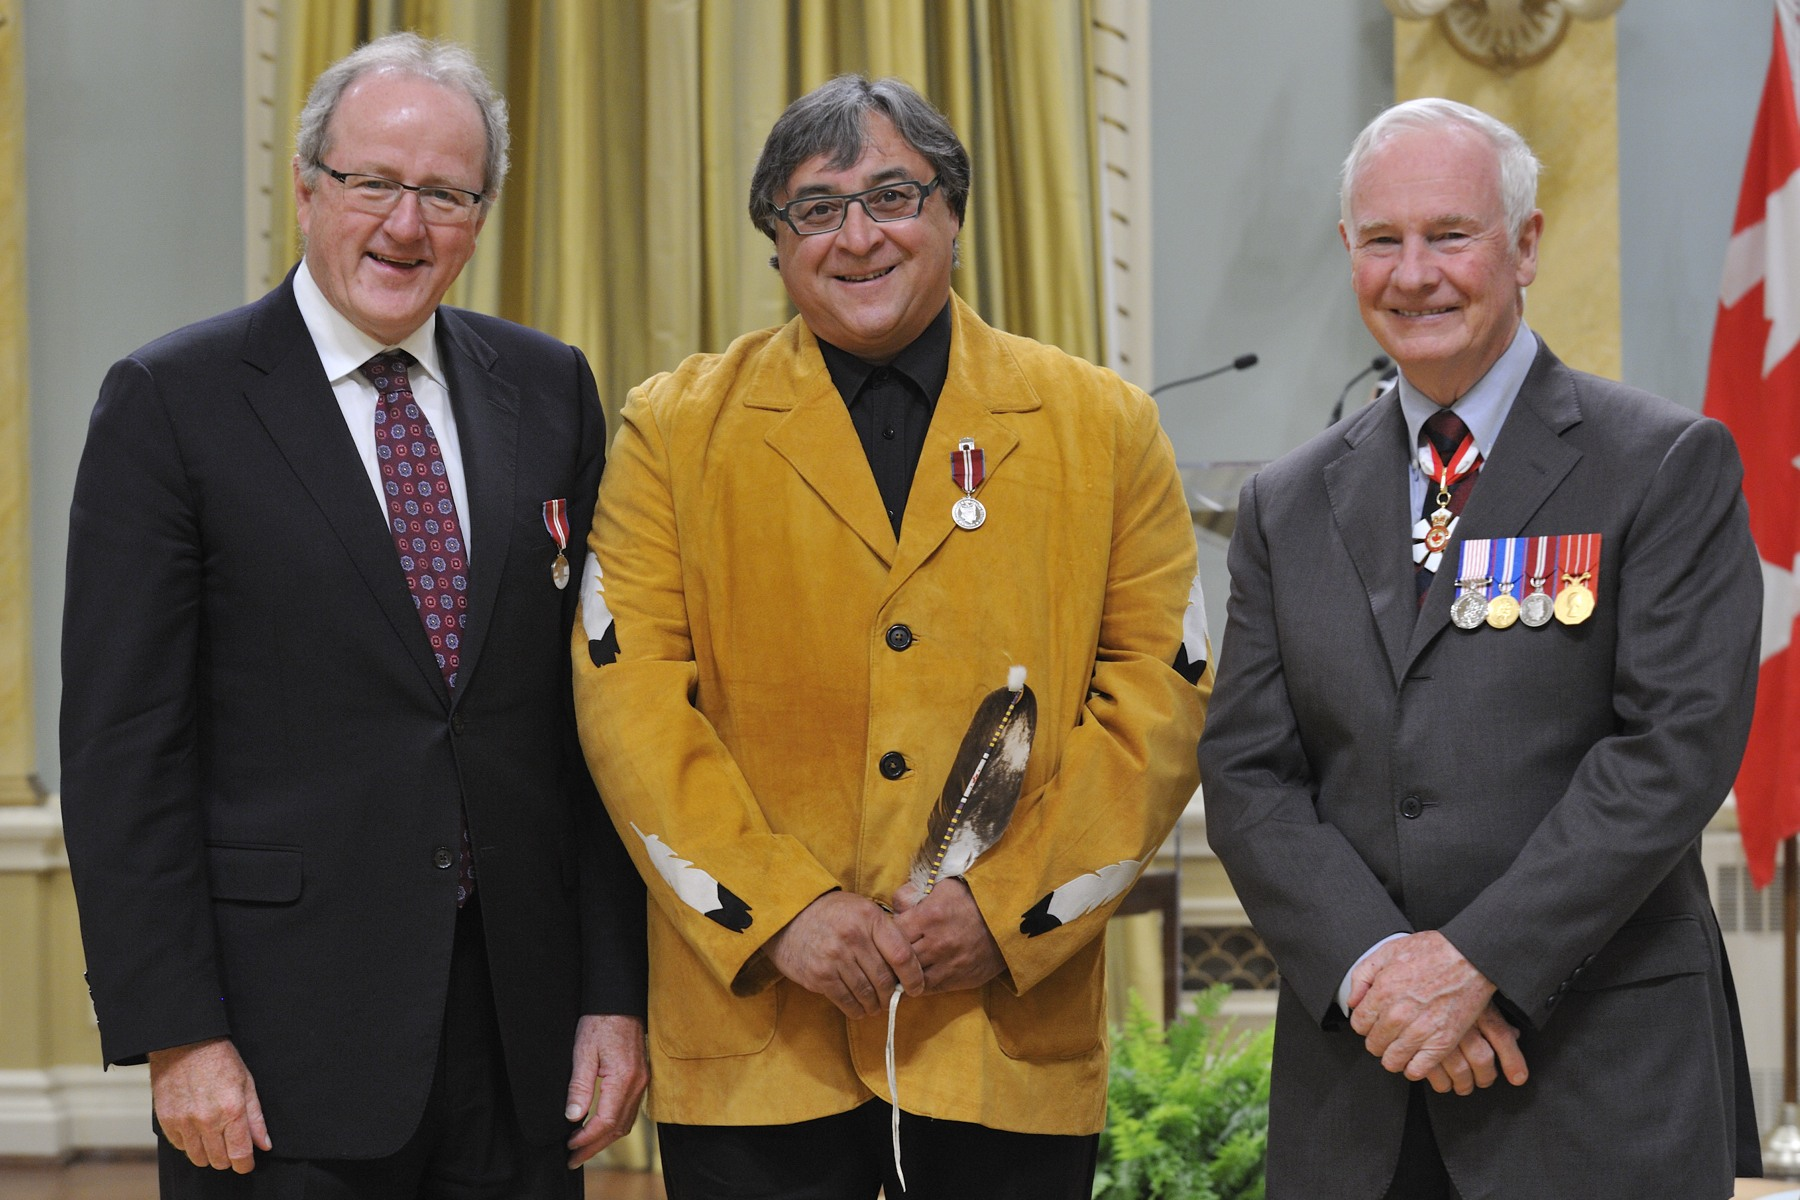 On the occasion of National Public Service Week, Diamond Jubilee Medals were presented to public servants whose contributions were recognized by their department. Mr. Ray Hatfield, Aboriginal Affairs and Northern Development Canada, is pictured with the Governor General (right) and Mr. Wayne Wouters, Clerk of the Privy Council (left).